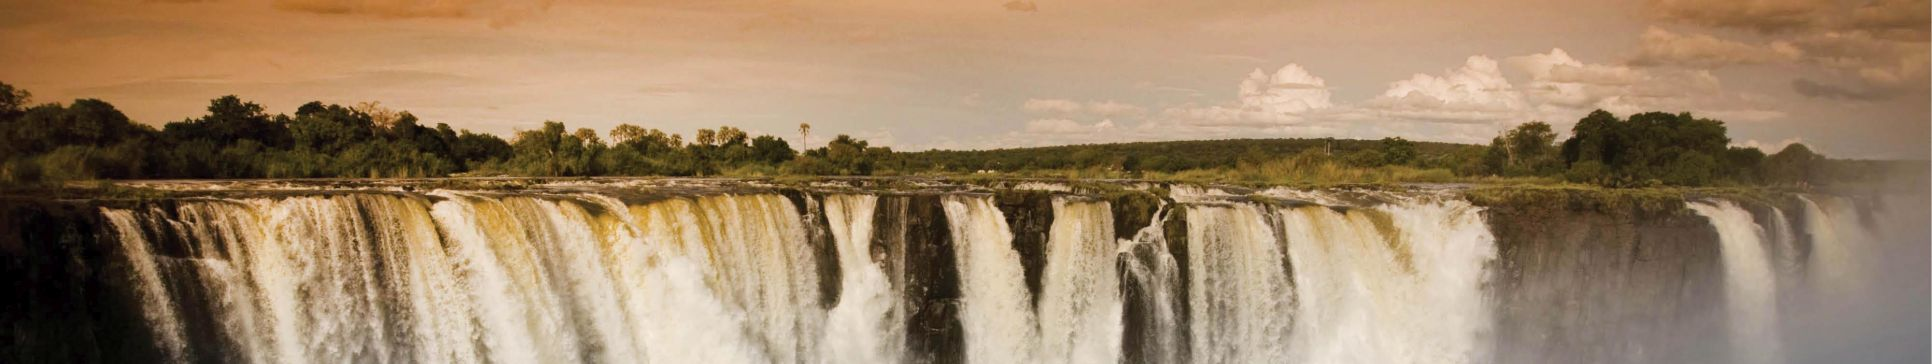 Travel to victoria falls zimbabwe itinerary ideas for Garden design ideas in zimbabwe